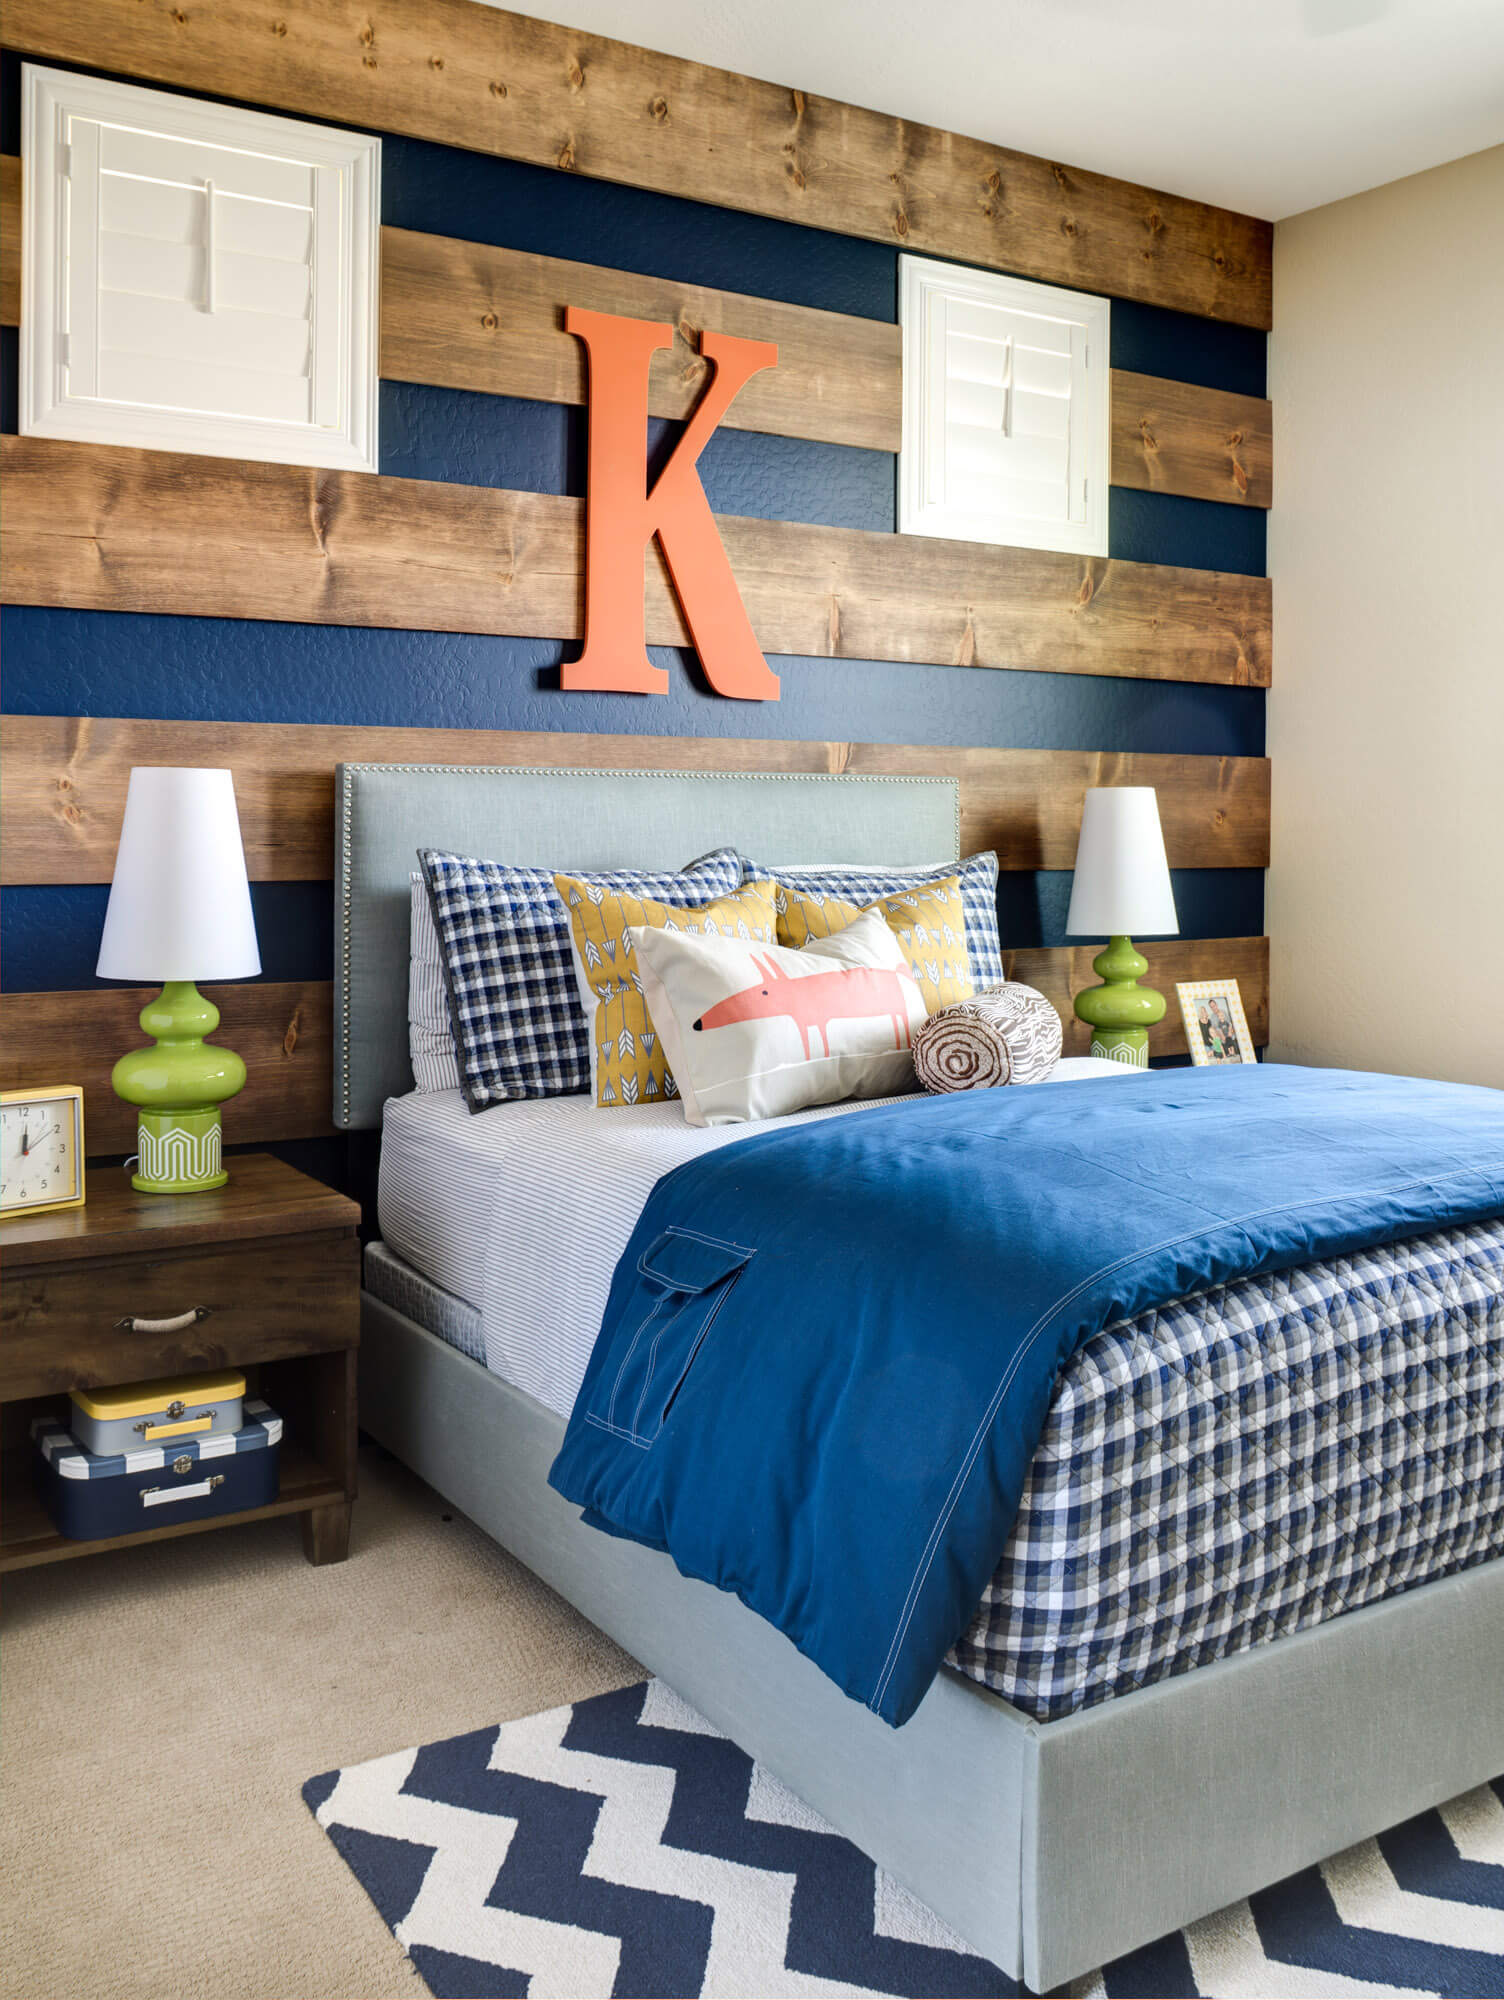 Large stained boards over a navy blue wall